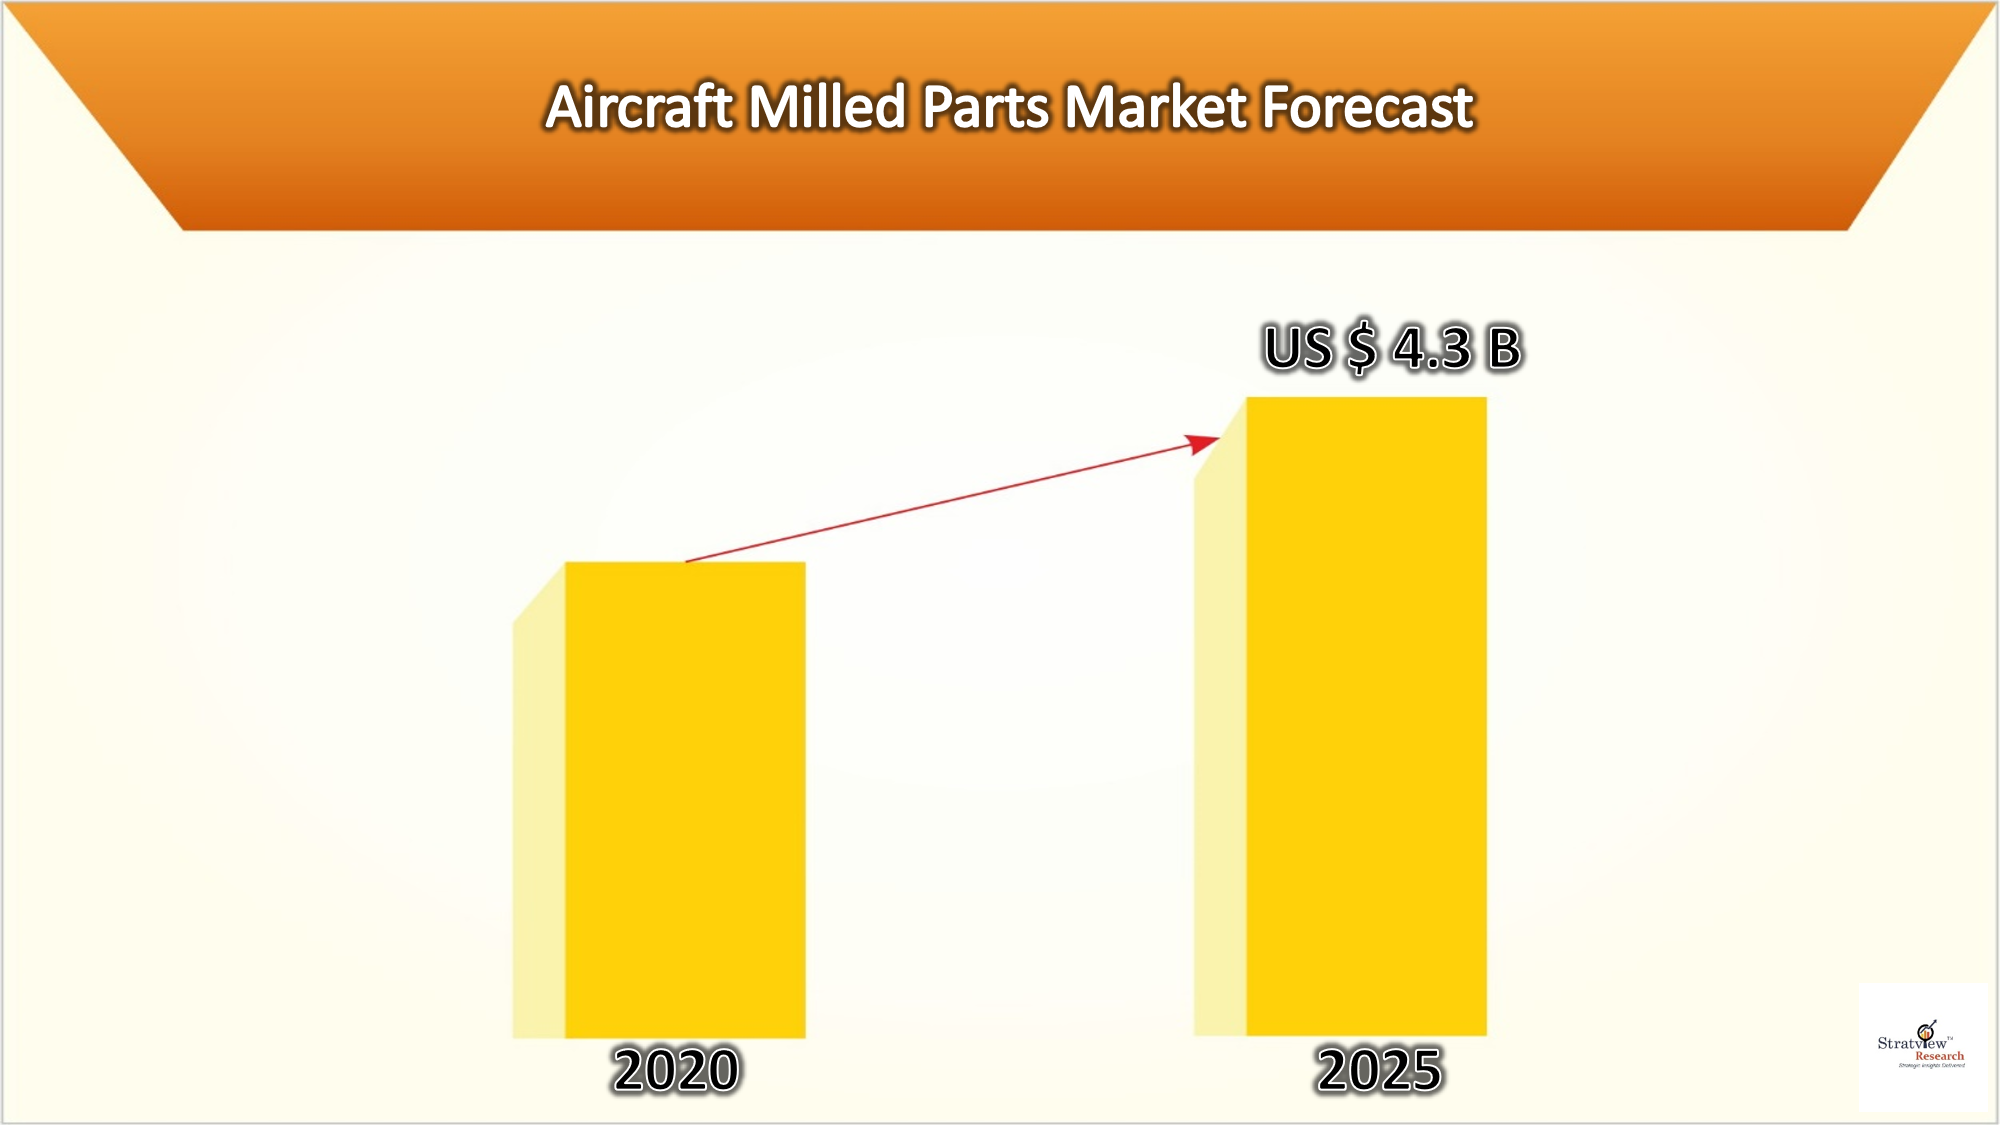 Aircraft Milled Parts Market